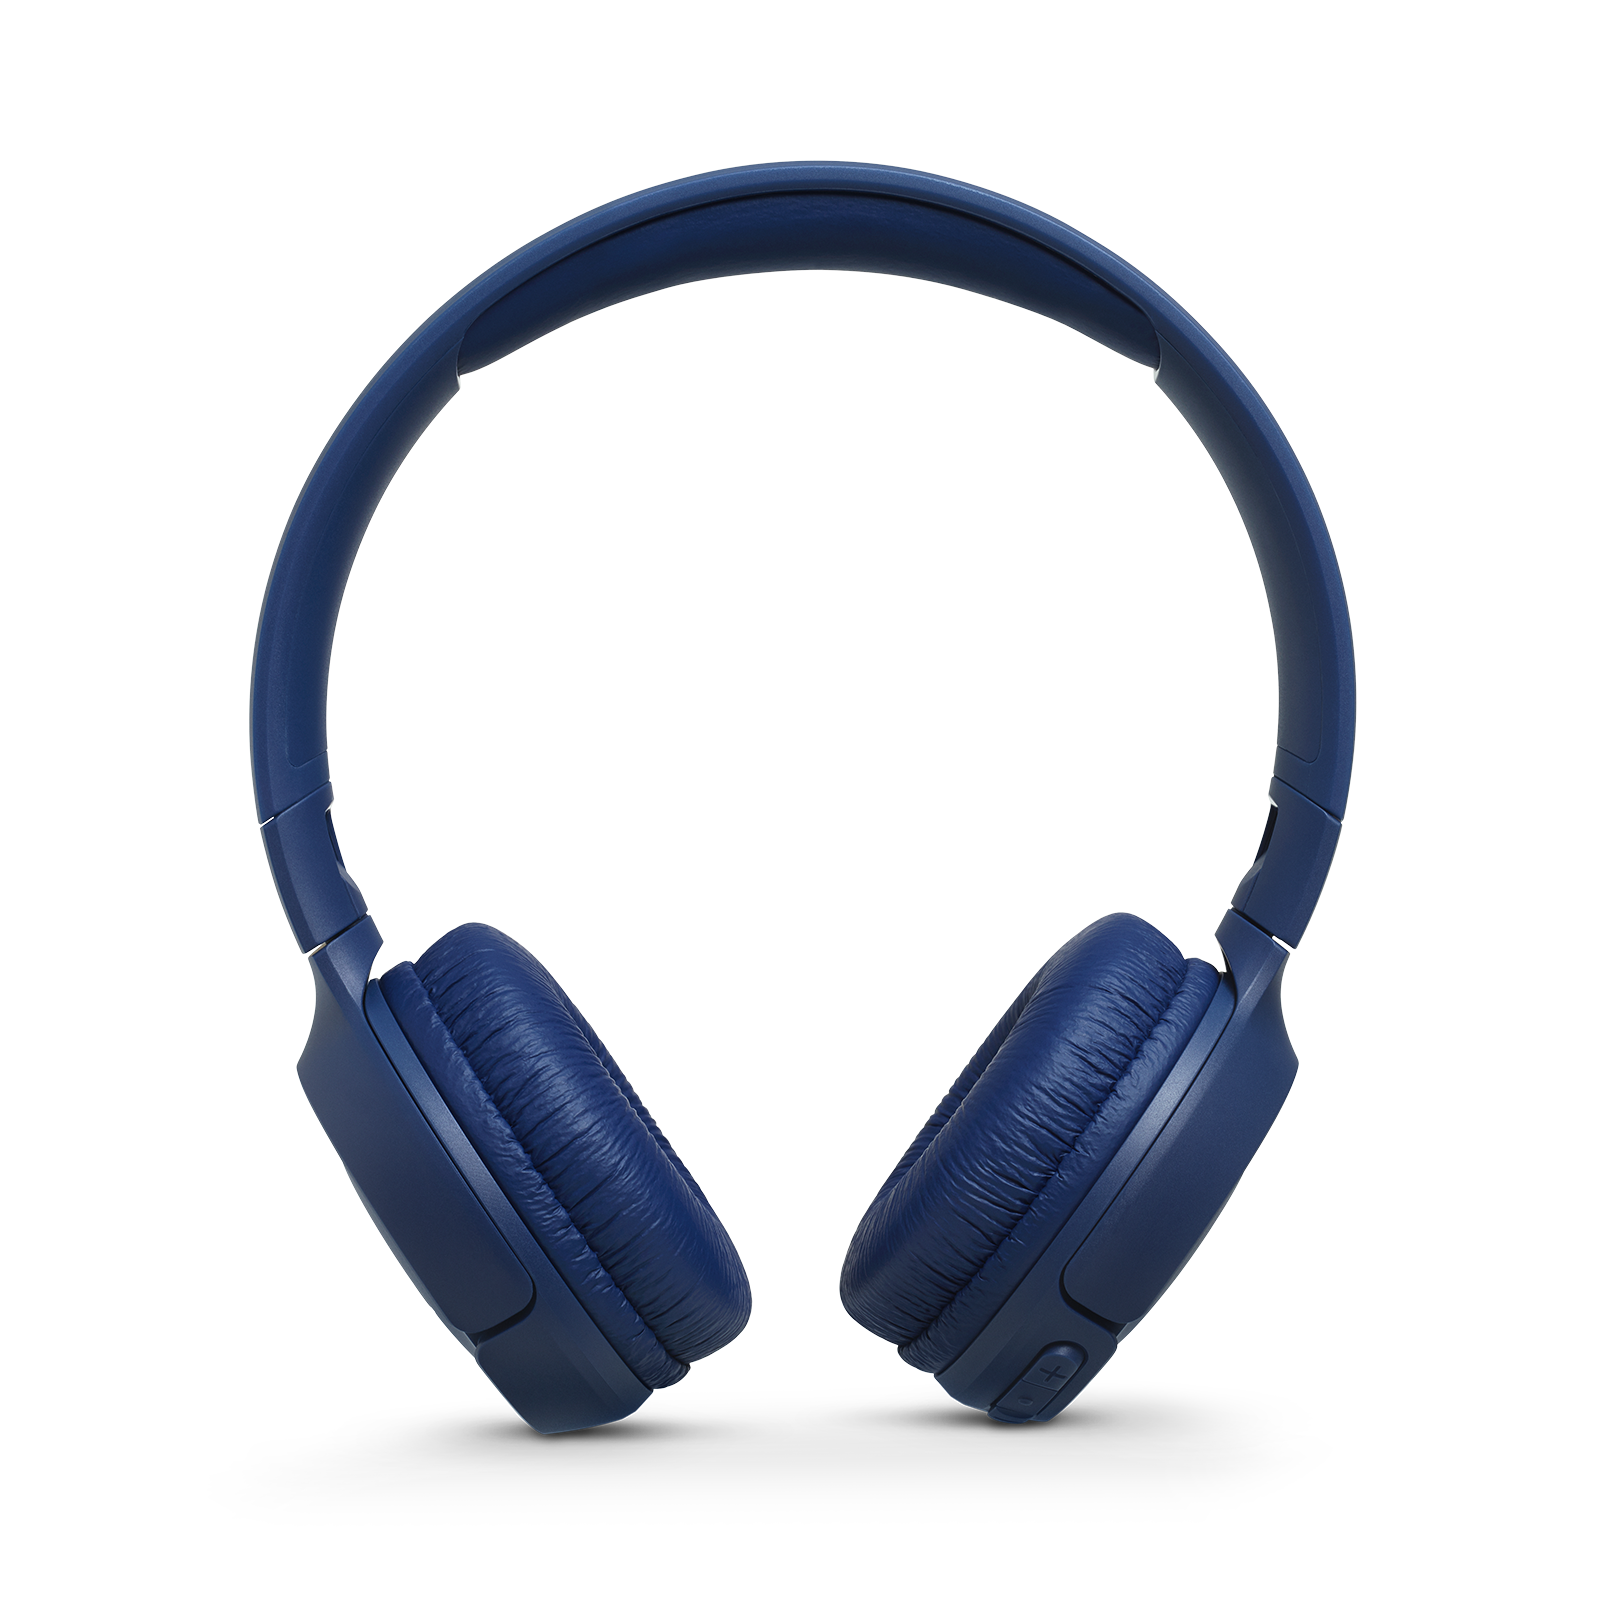 JBL TUNE 500BT - Blue - Wireless on-ear headphones - Front